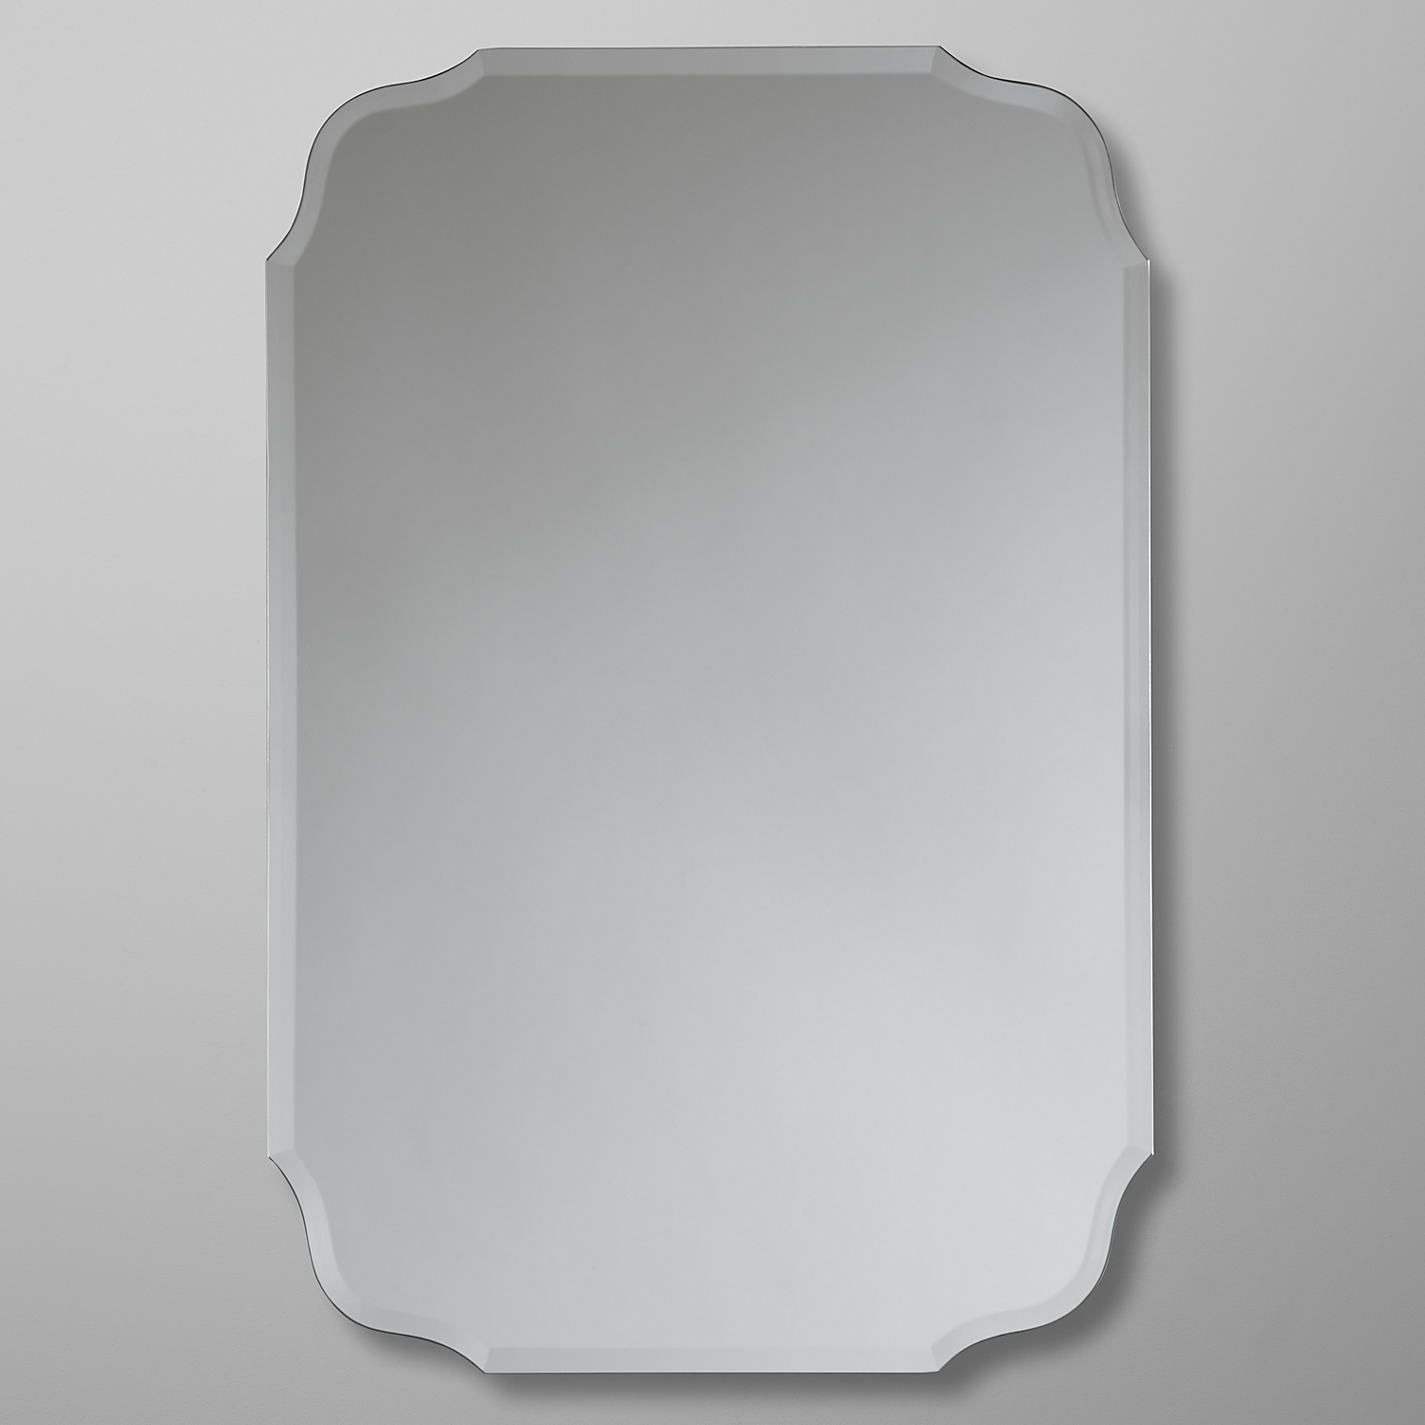 Bathroom Mirrors Range vintage bathroom wall mirror | vintage bathrooms, john lewis and